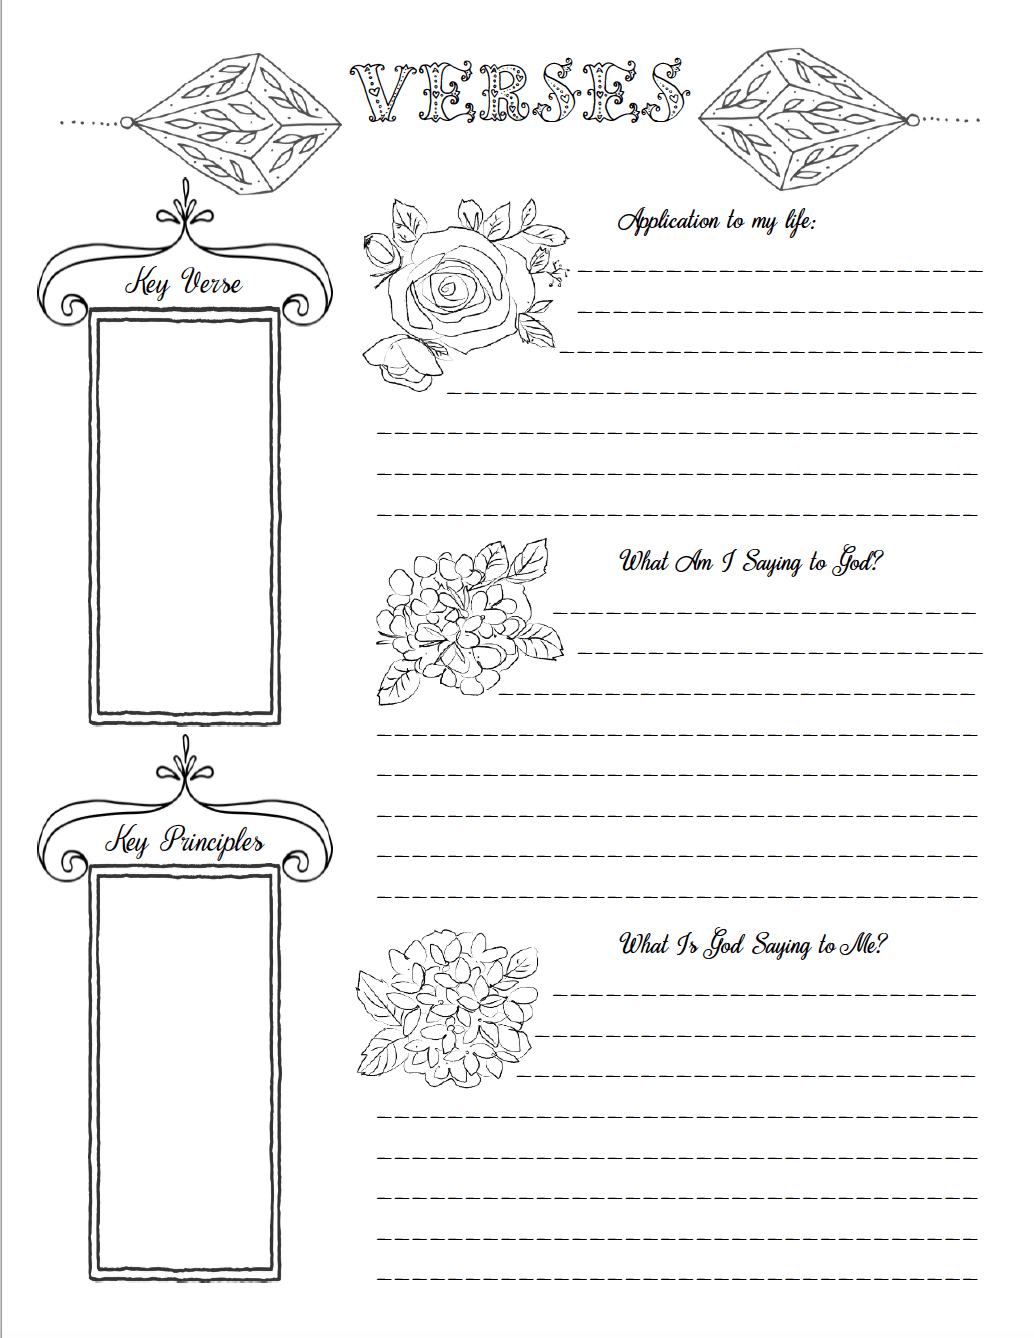 Worksheet Free Bible Journaling Templates Pdf